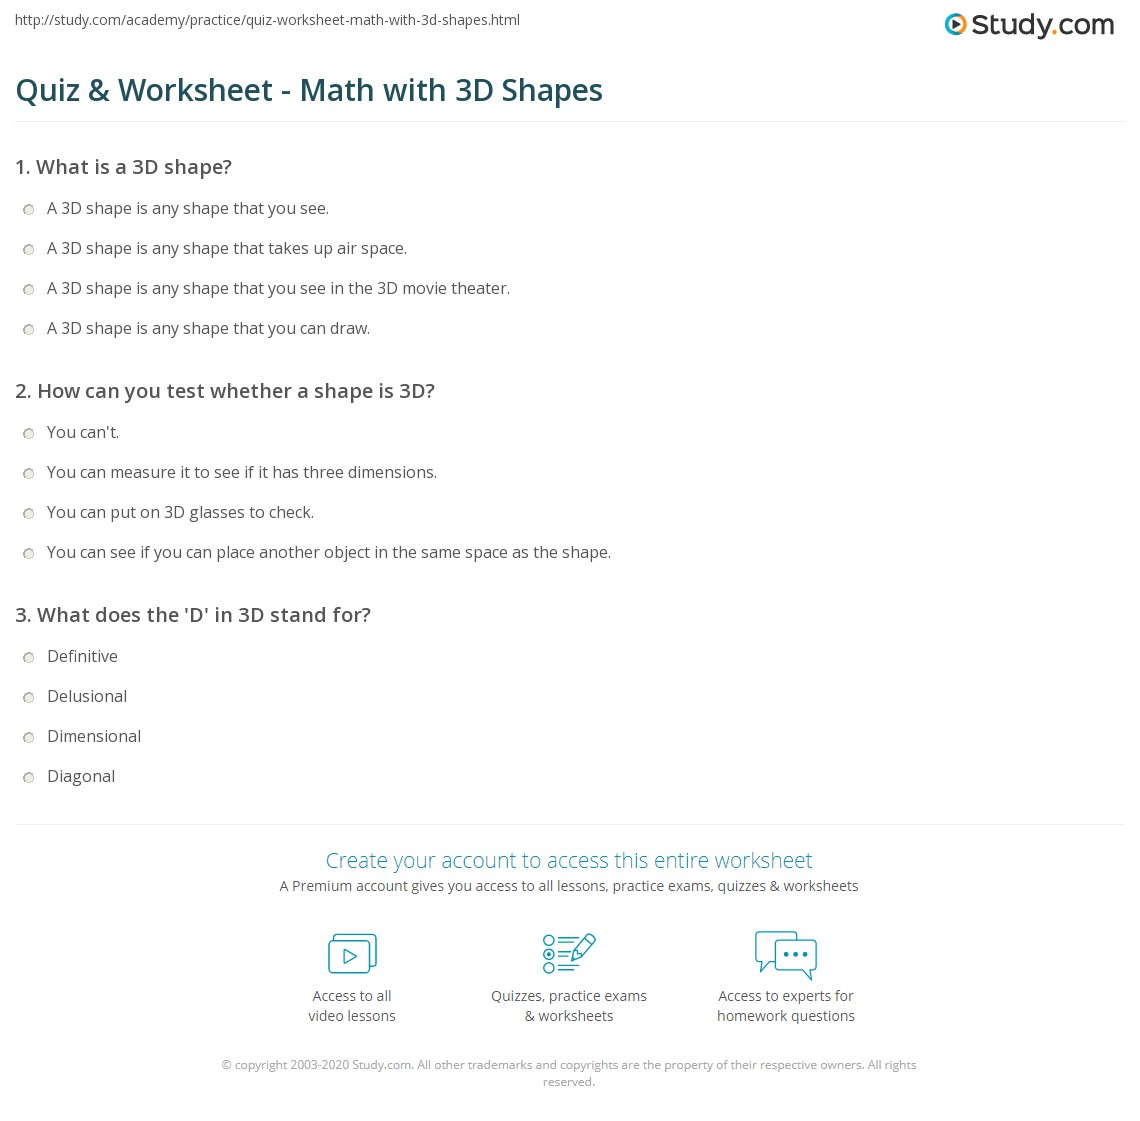 Workbooks solid shapes worksheets : Quiz & Worksheet - Math with 3D Shapes | Study.com